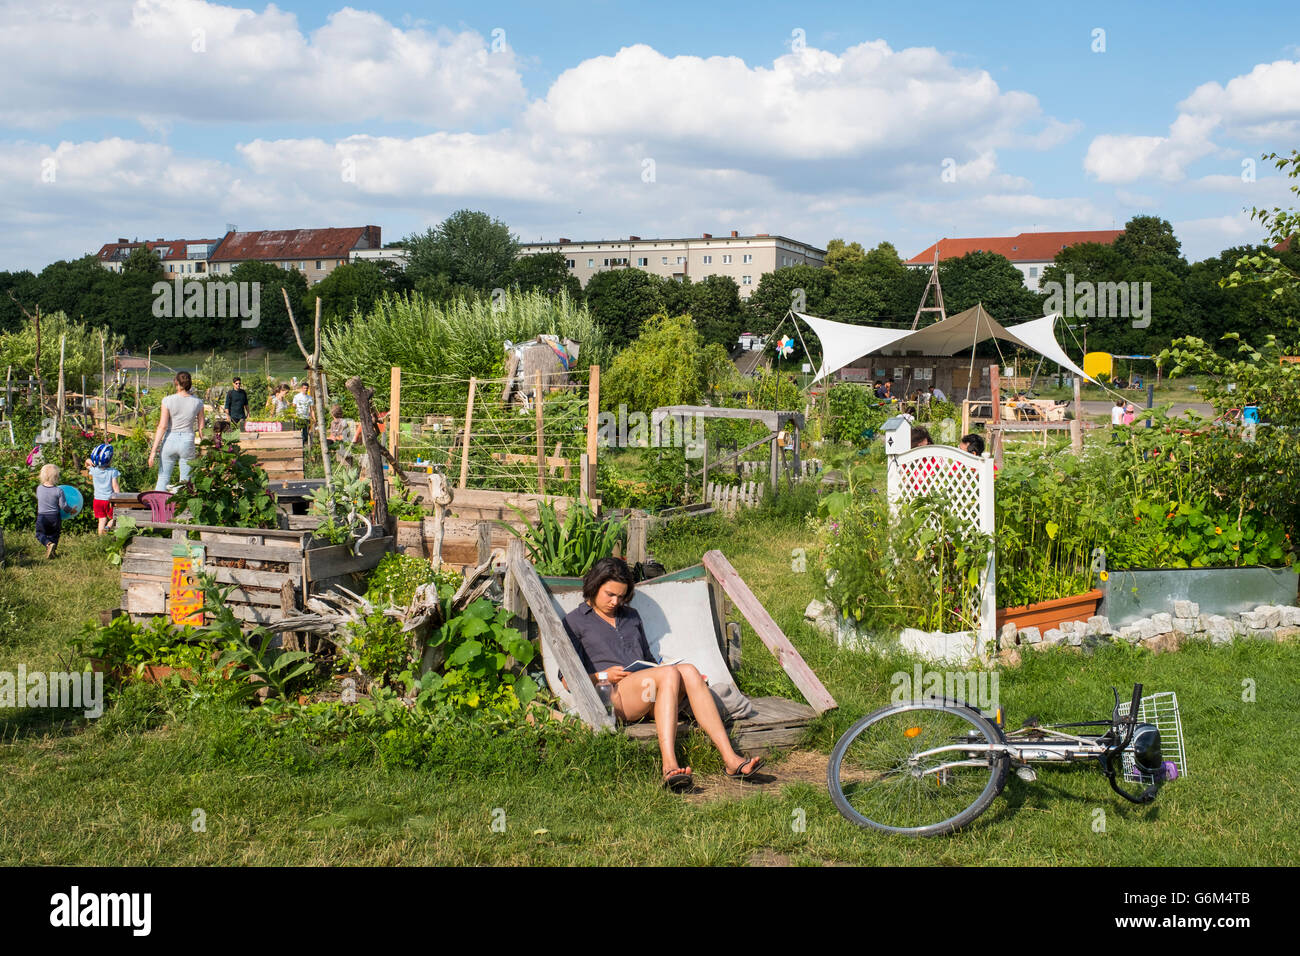 Community garden project at Tempelhof Park former airport in Berlin Germany - Stock Image